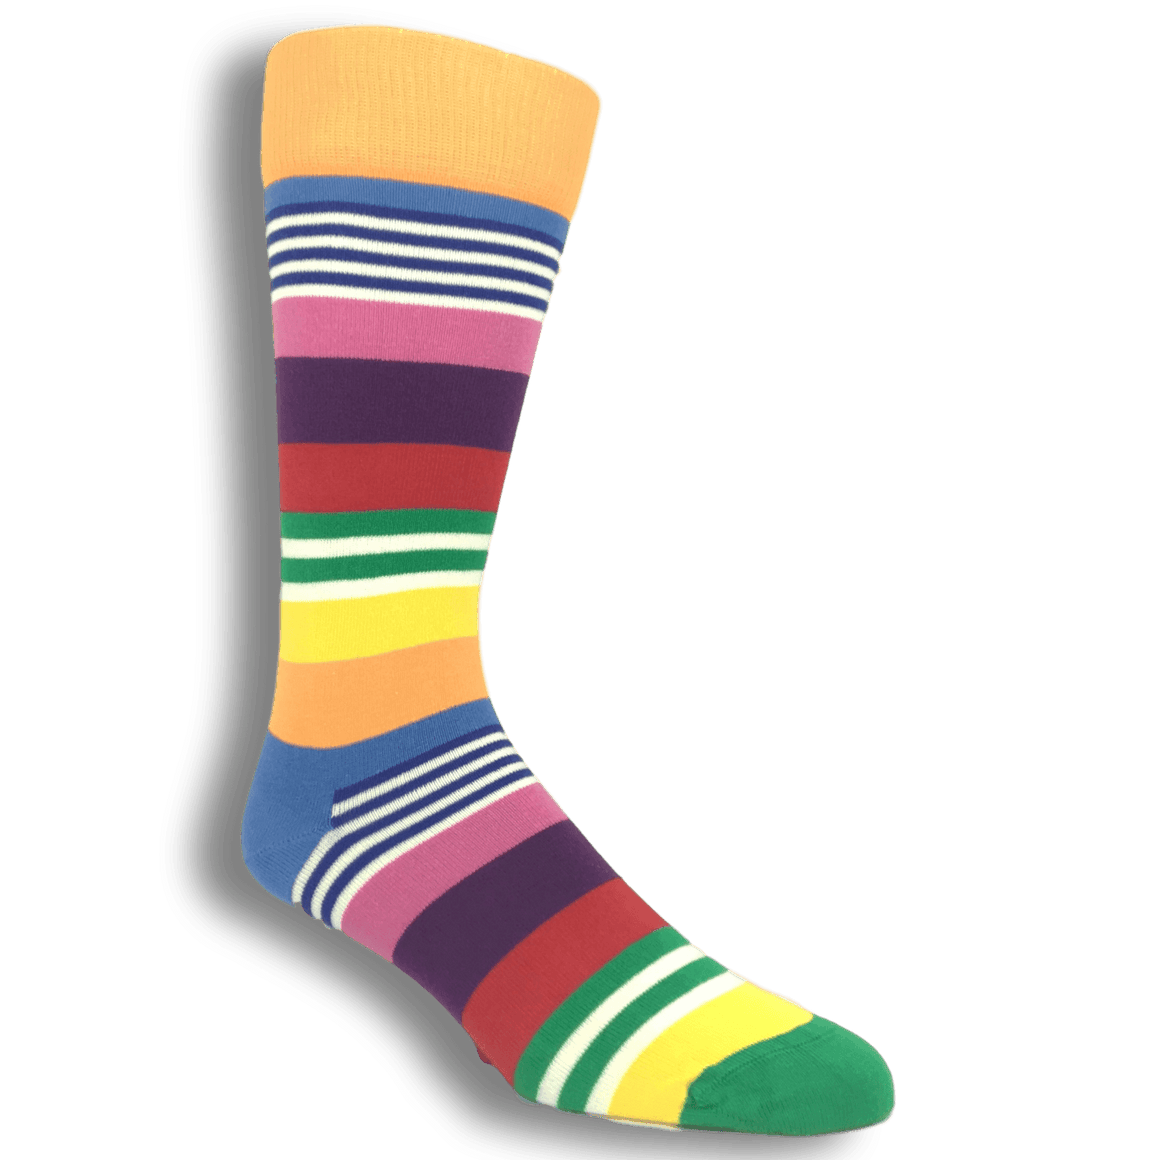 Socks - Green, Orange, And Pink Multi Stripe Socks By Happy Socks